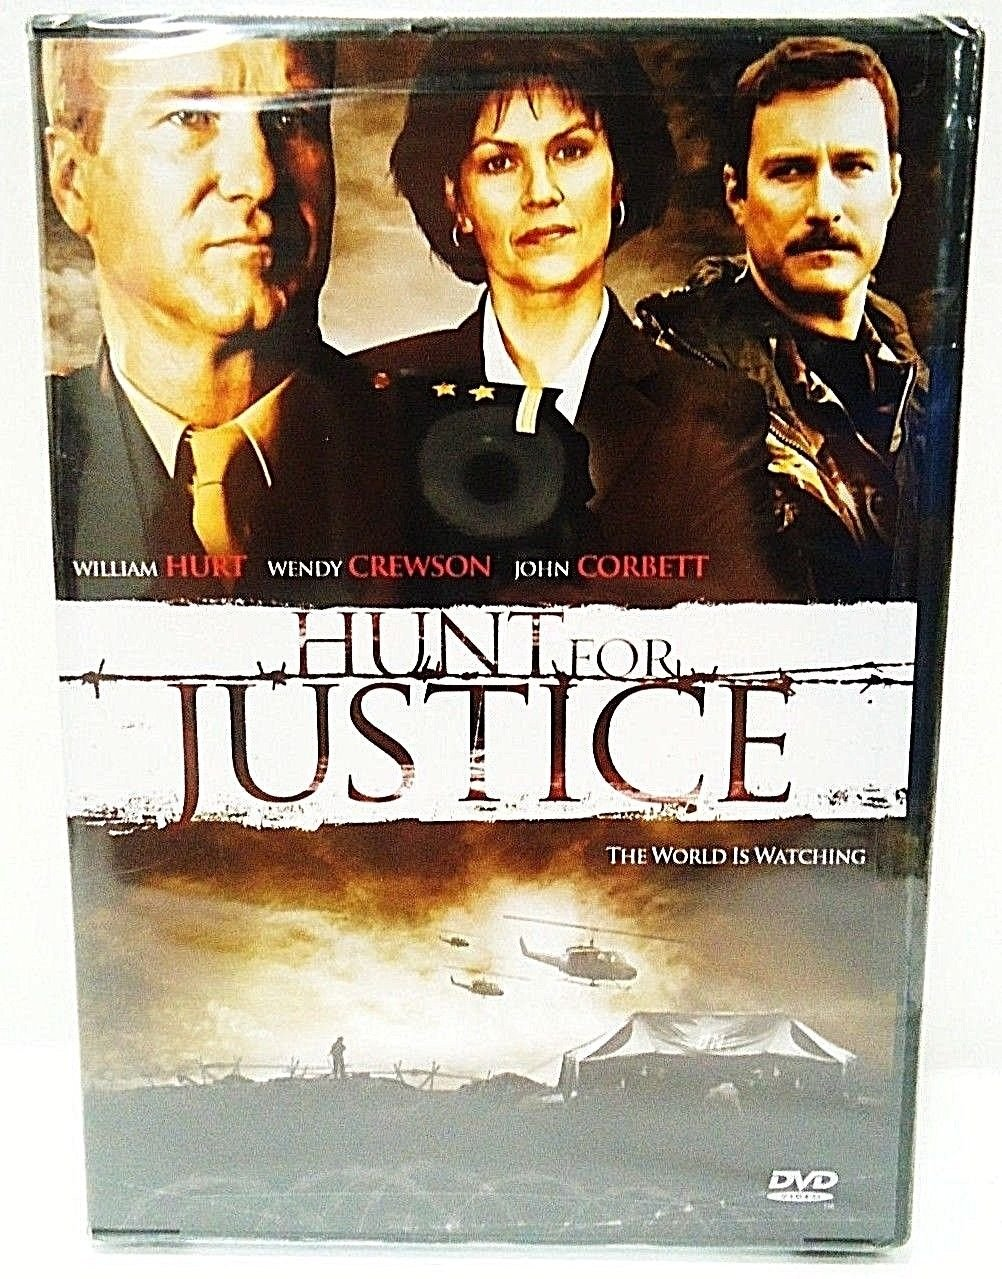 HUNT FOR JUSTICE - DVD - WILLIAM HURT - NEW - SEALED - YUGOSLAVIA - WAR - MOVIE